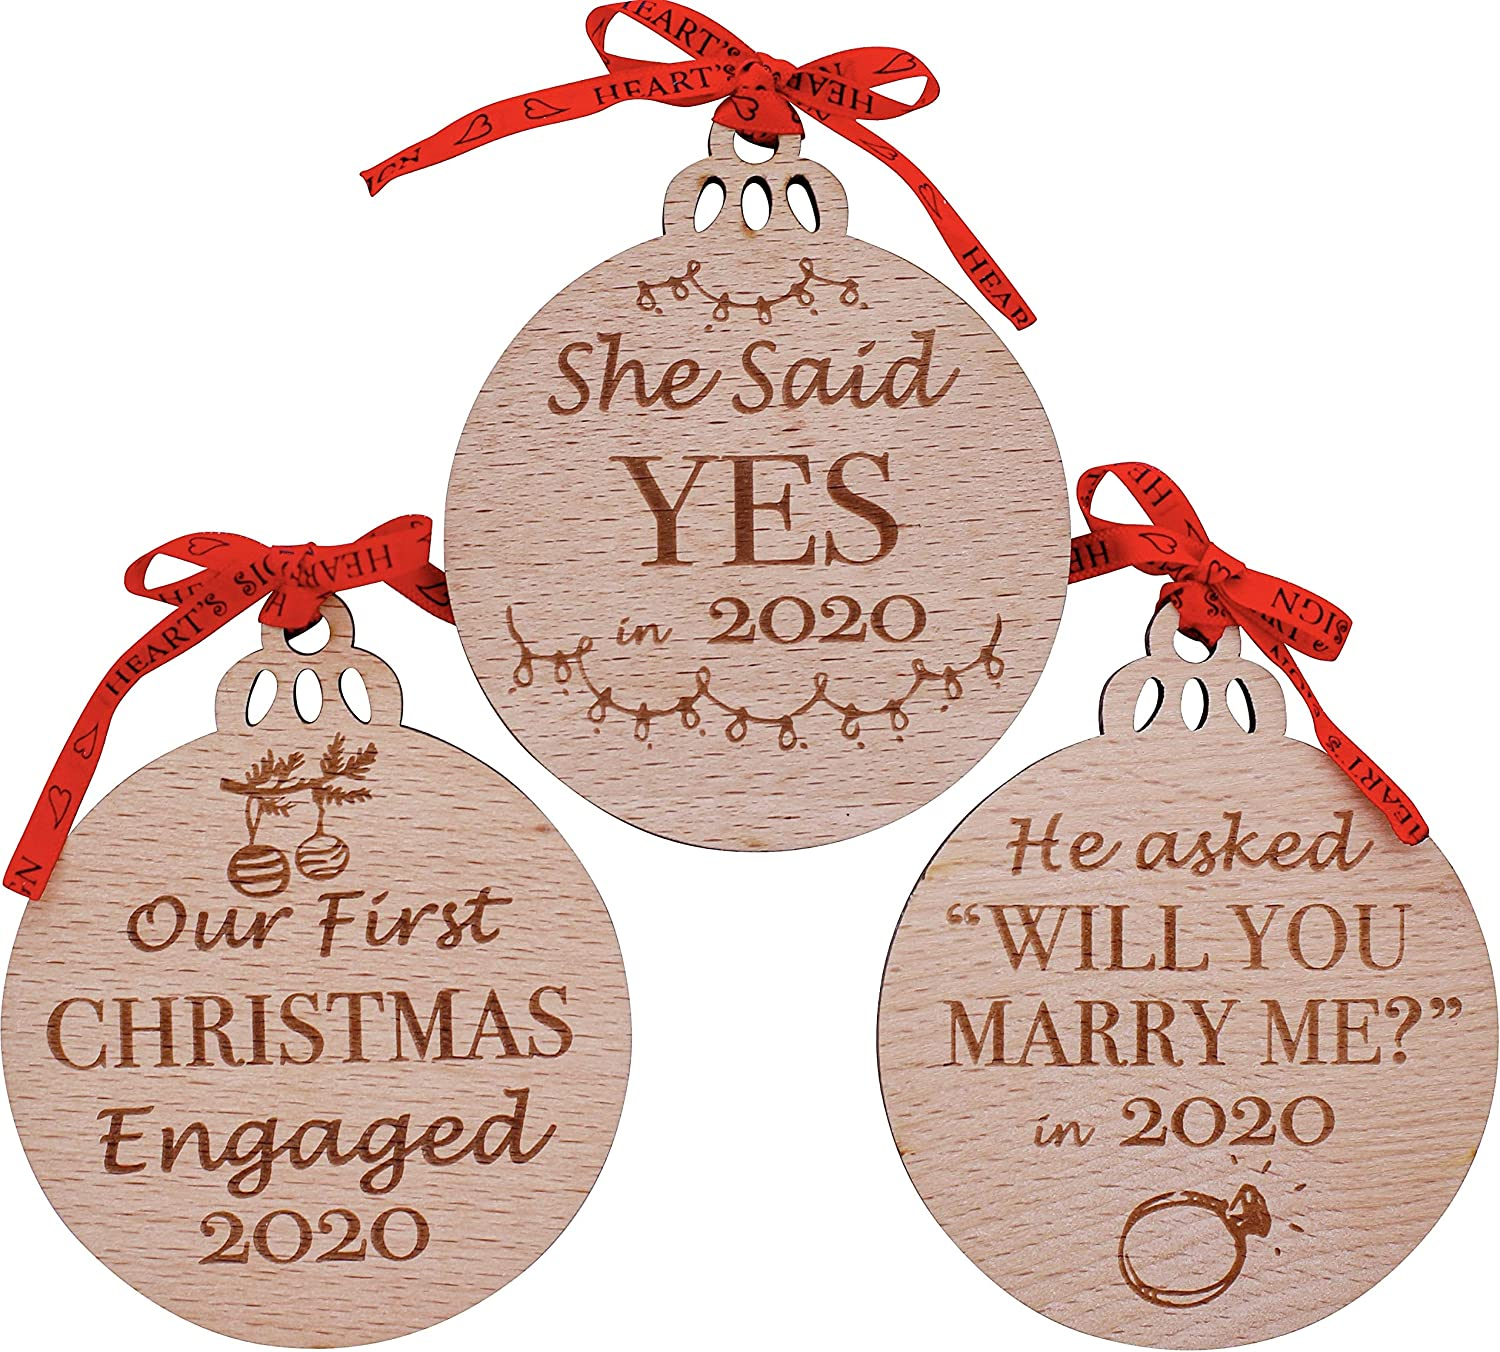 Heart's Sign First Christmas Engagement Gift for Couples 2020 Set of 3 | Our First Christmas Engaged Ornament 2020 | Ornaments Engagement | Wedding Decor